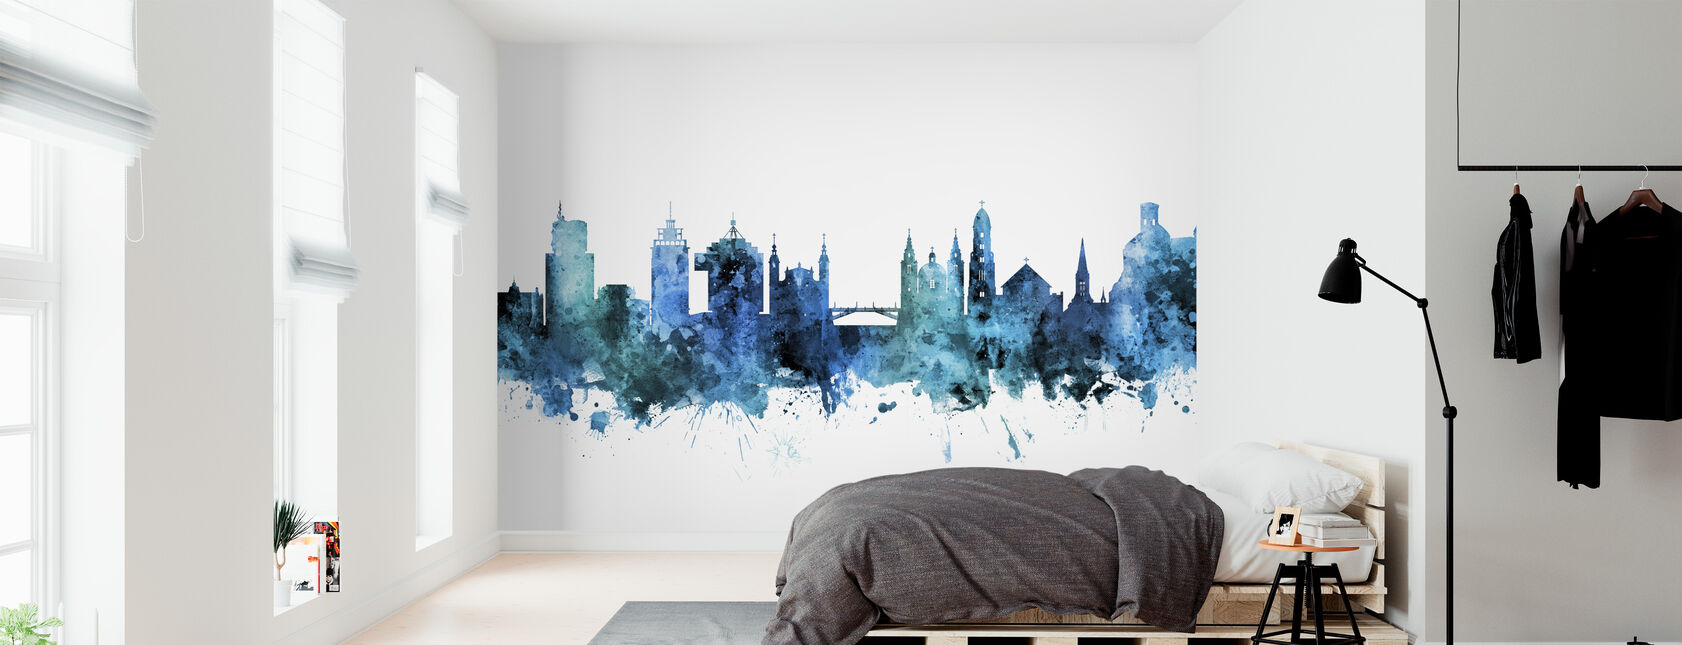 Ljubljana Solvenia Skyline - Wallpaper - Bedroom